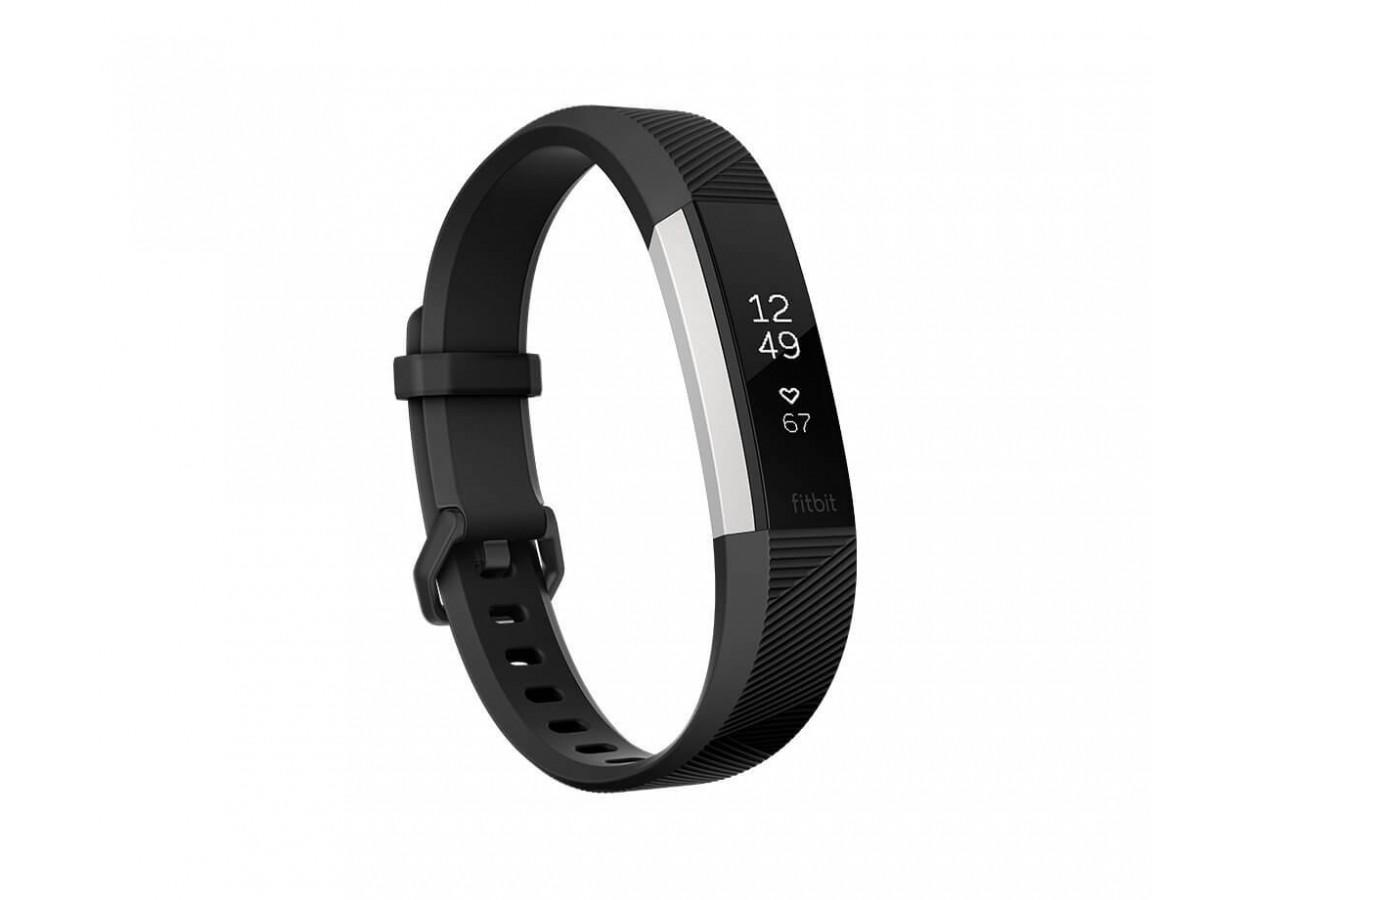 The Fitbit Alta HR has a sleek design